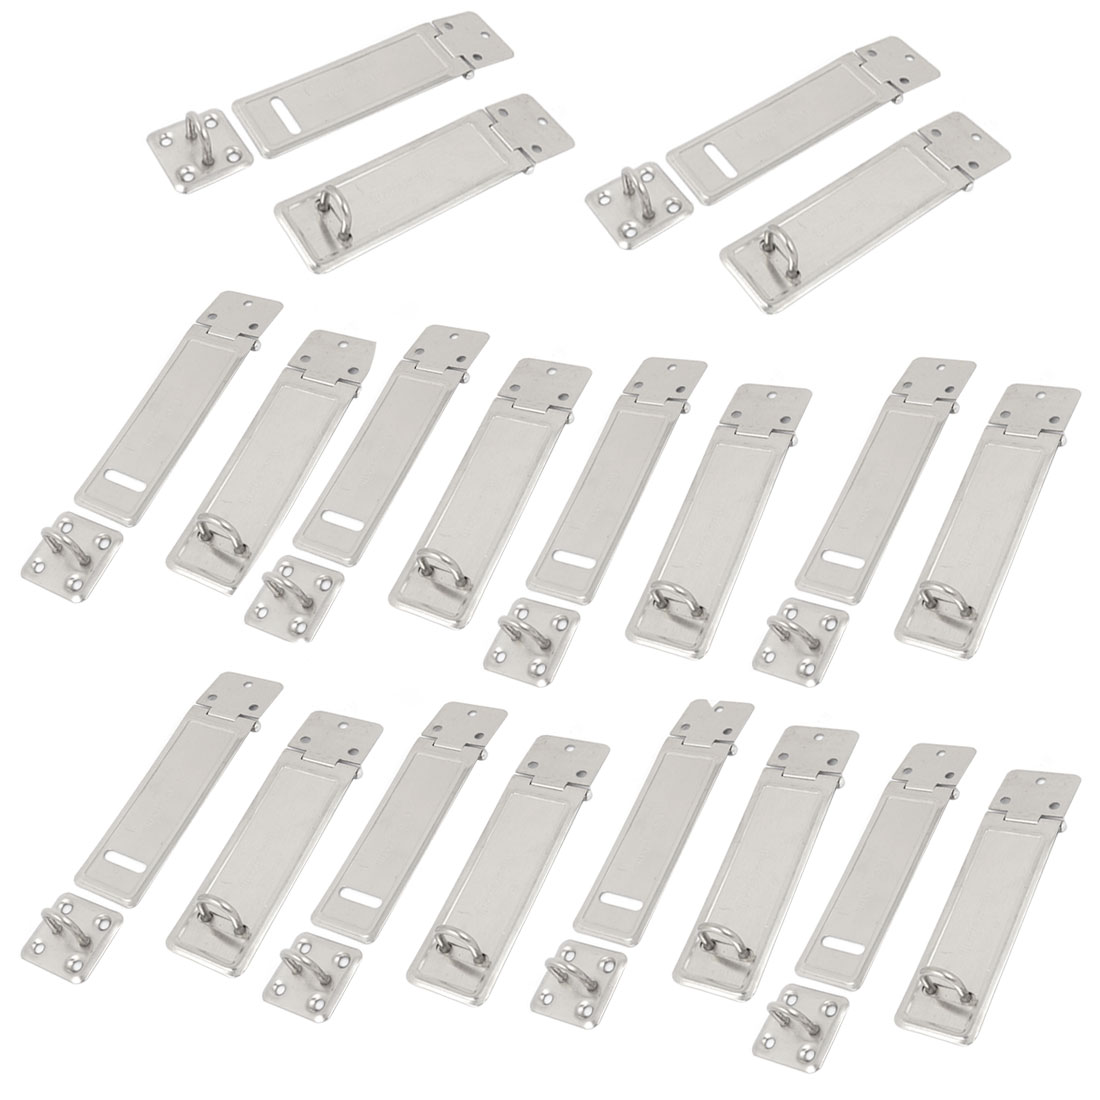 20 Pcs 9.5cm x 3cm Silver Tone Stainless Steel Desk Cabinet Lock Replacement Saftey Door Hasp Staple